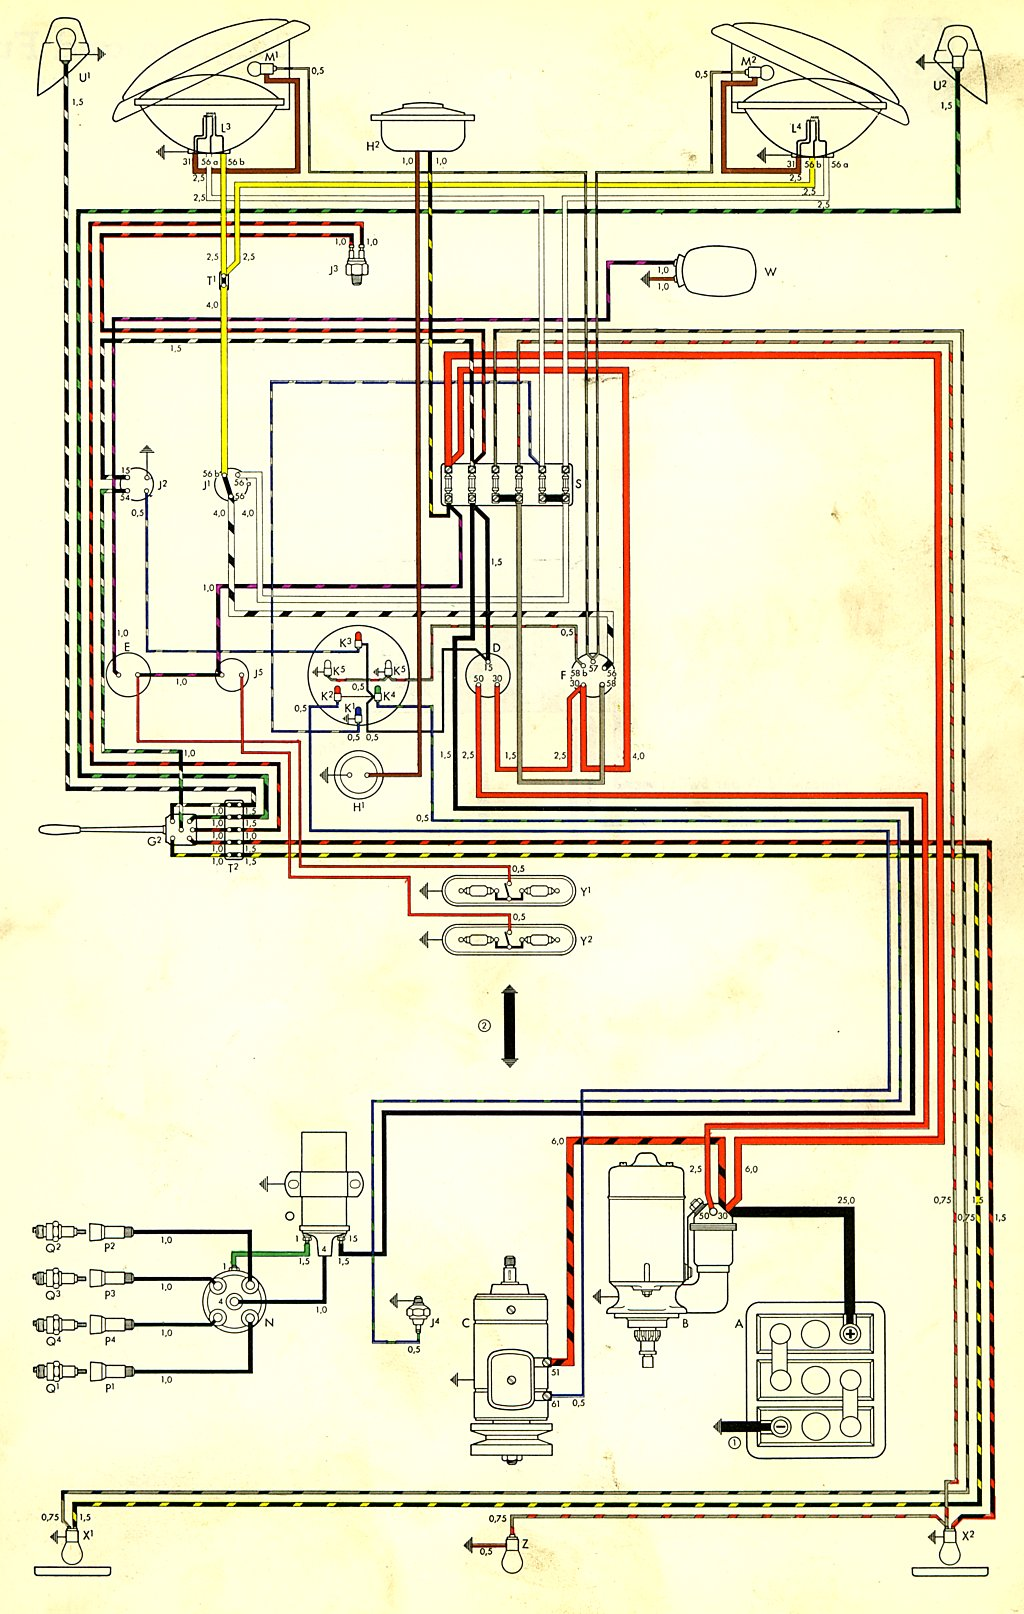 bus_59_USA thesamba com type 2 wiring diagrams vw bus wiring diagram at fashall.co